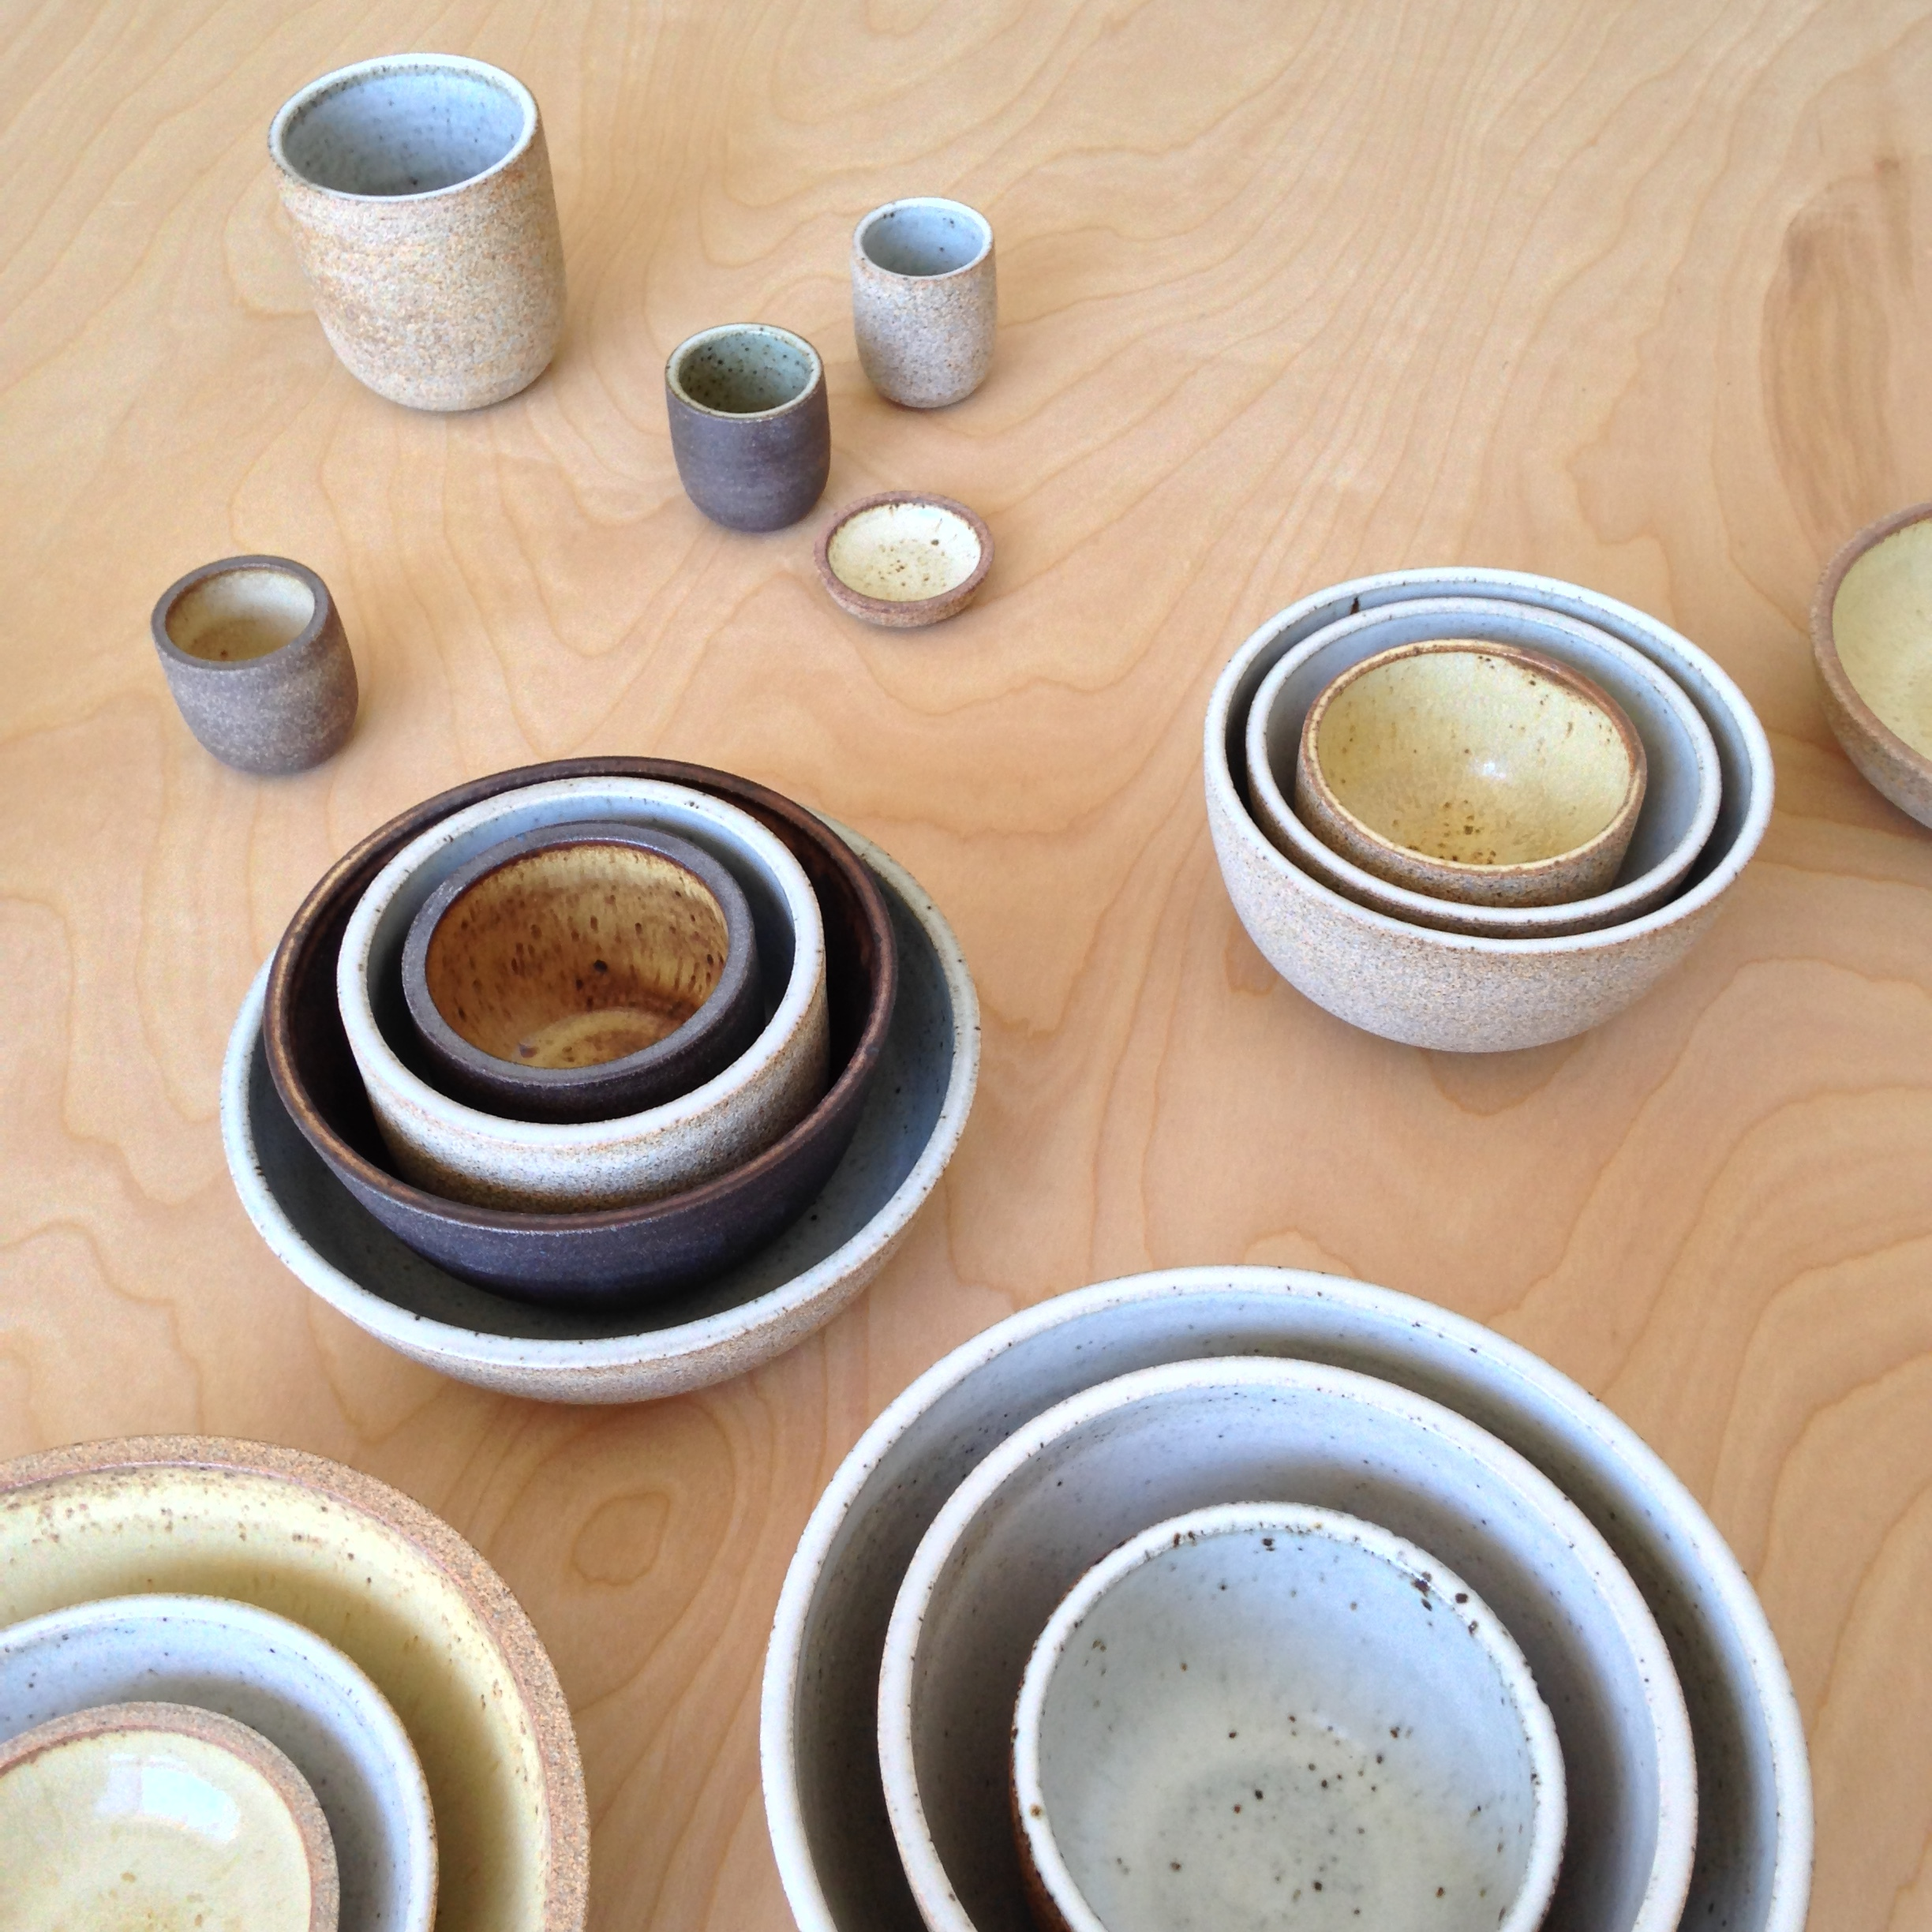 Julie Cloutier ceramics